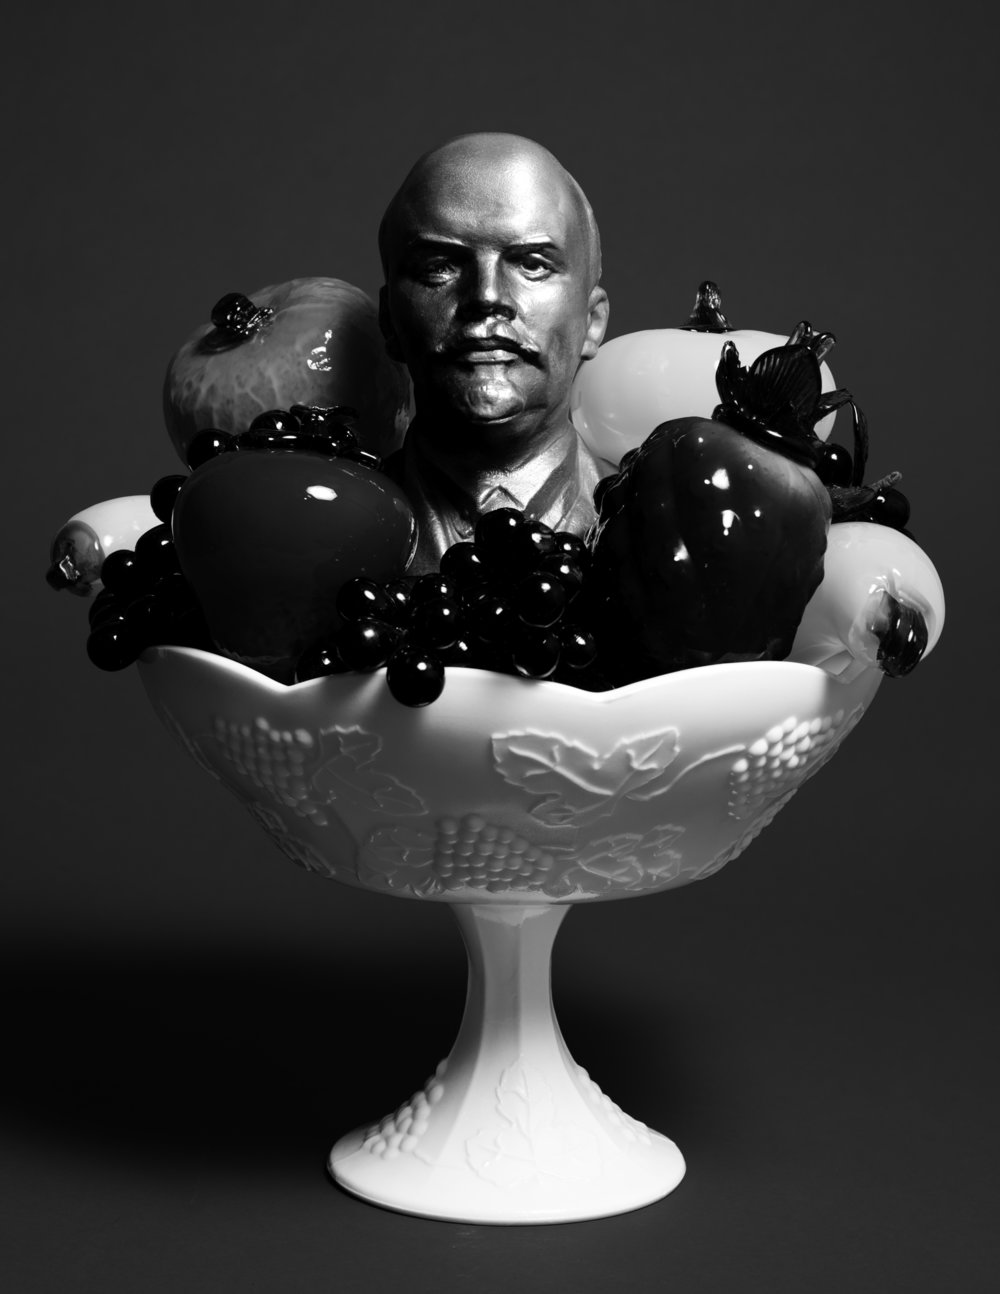 Still Life with Lenin and a Bowl of Fruit